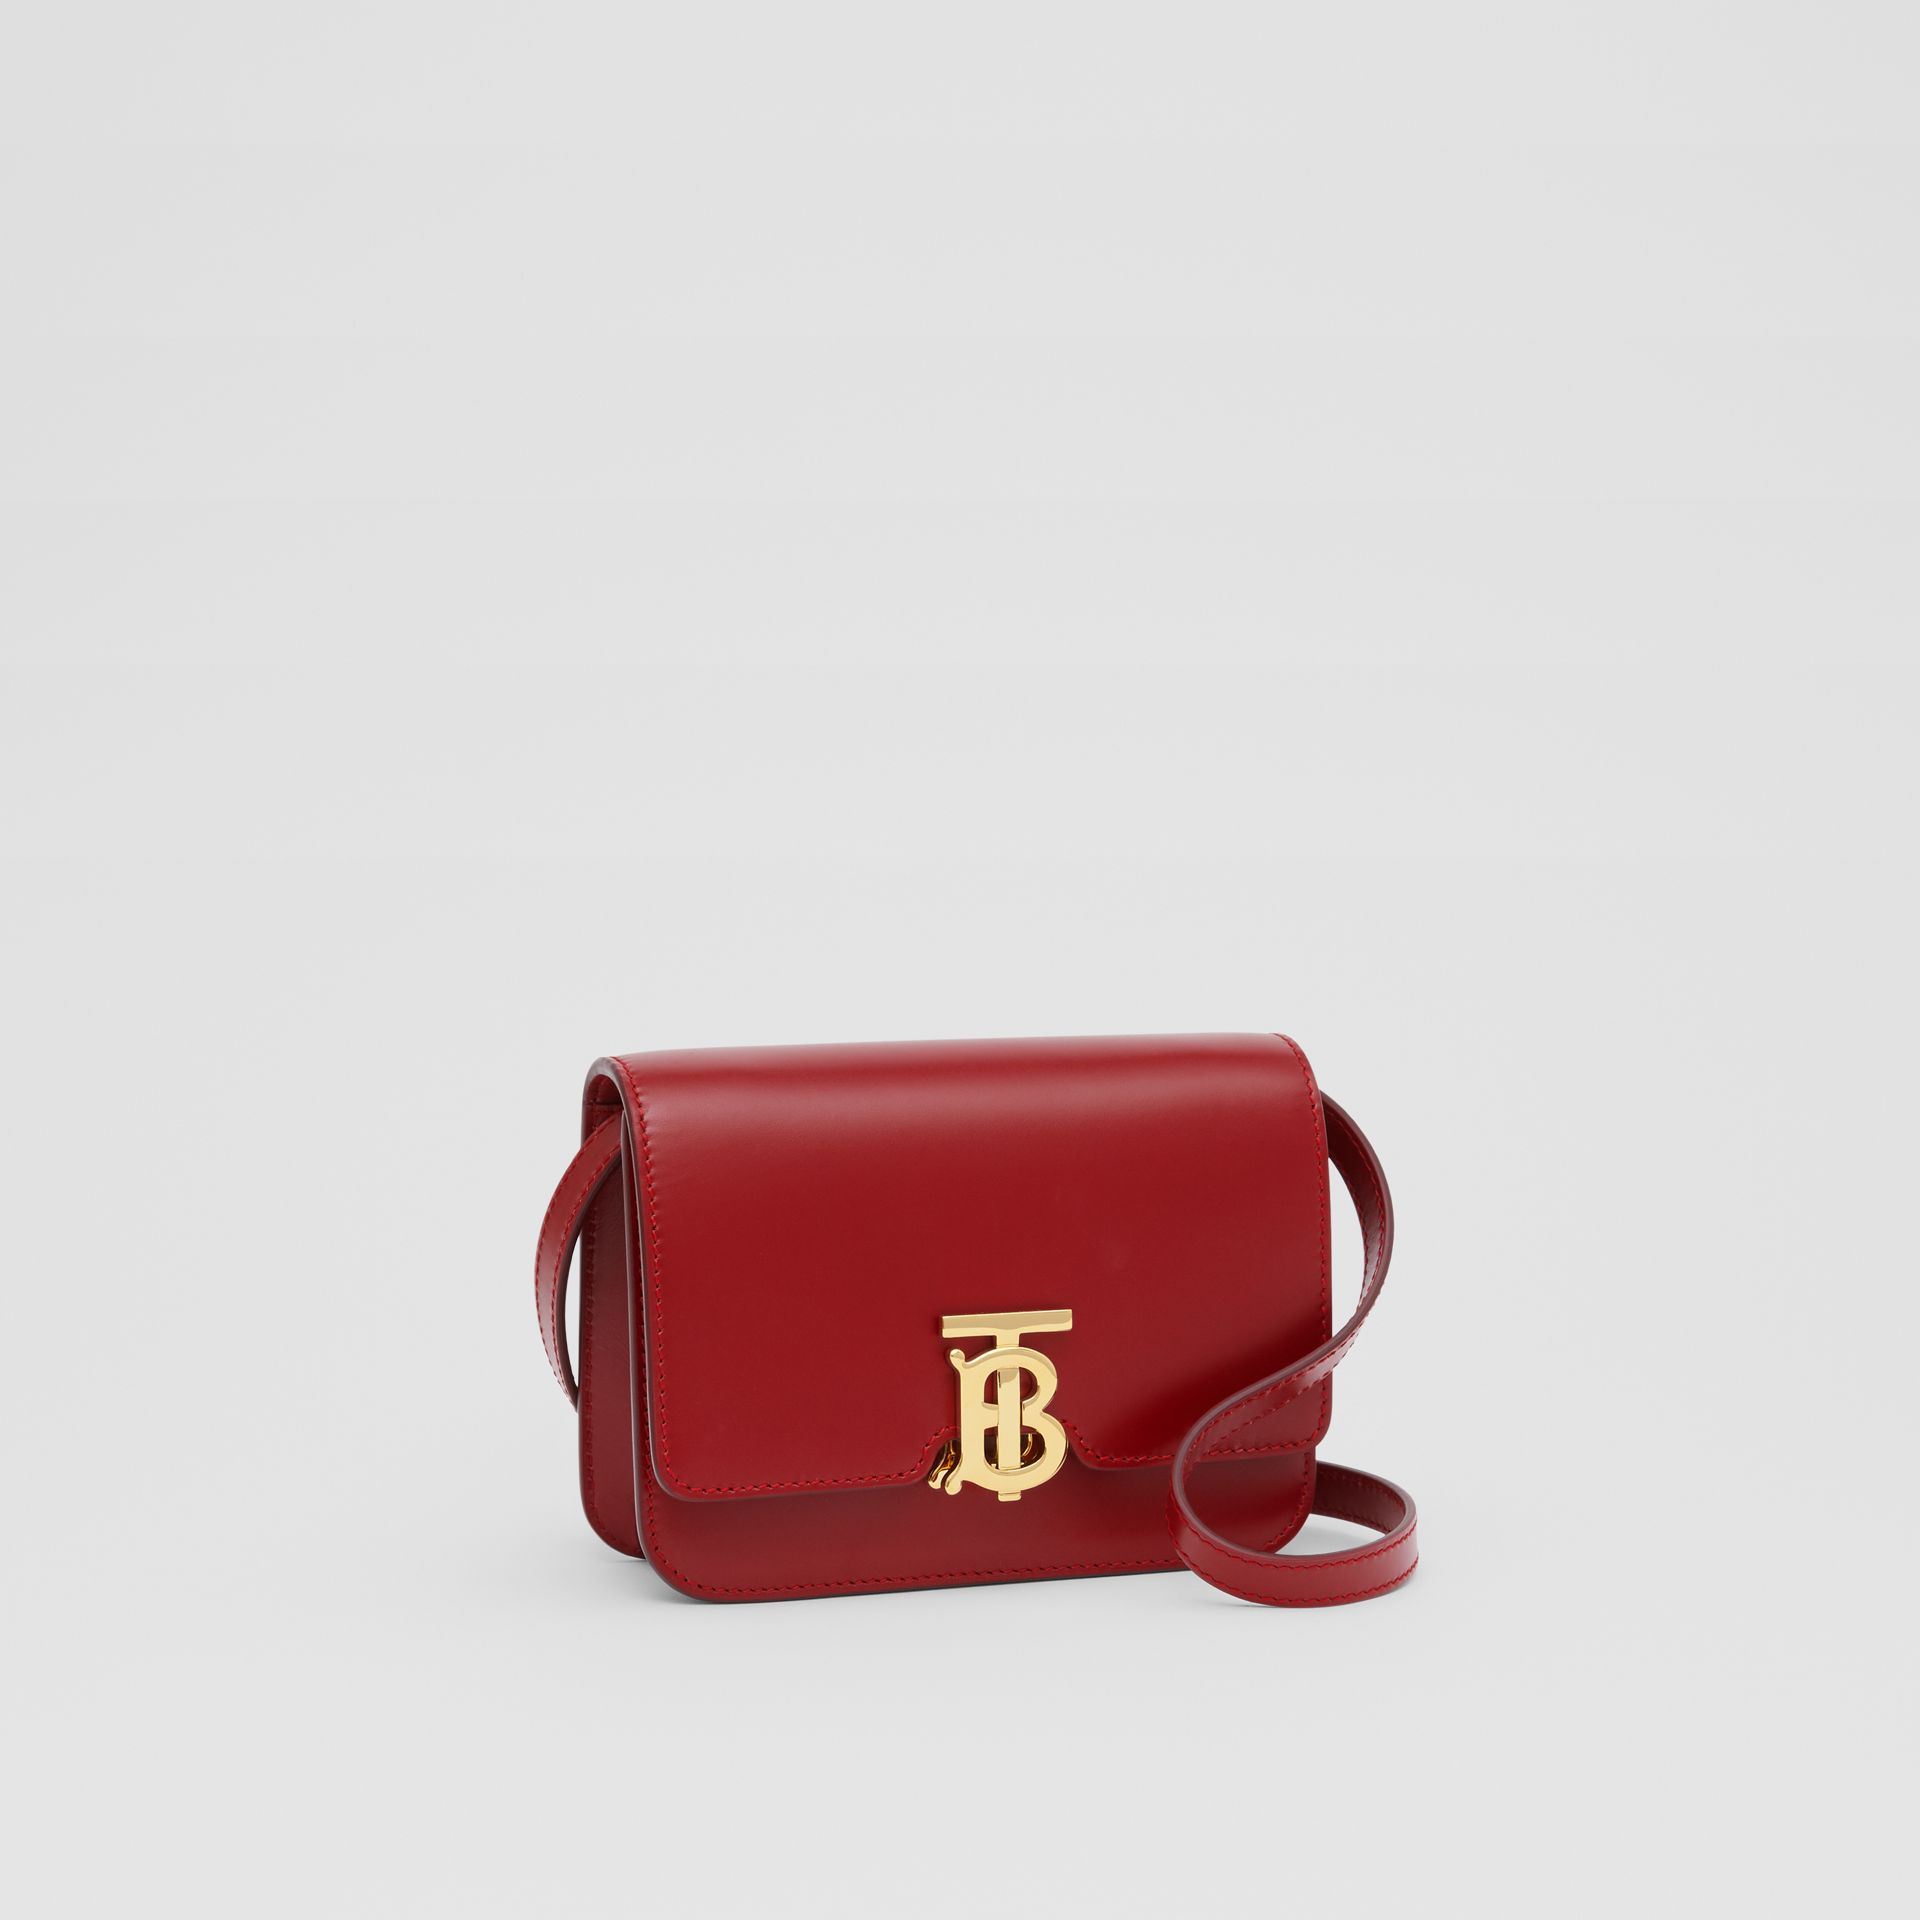 Mini Leather TB Bag in Dark Carmine - Women | Burberry - gallery image 6